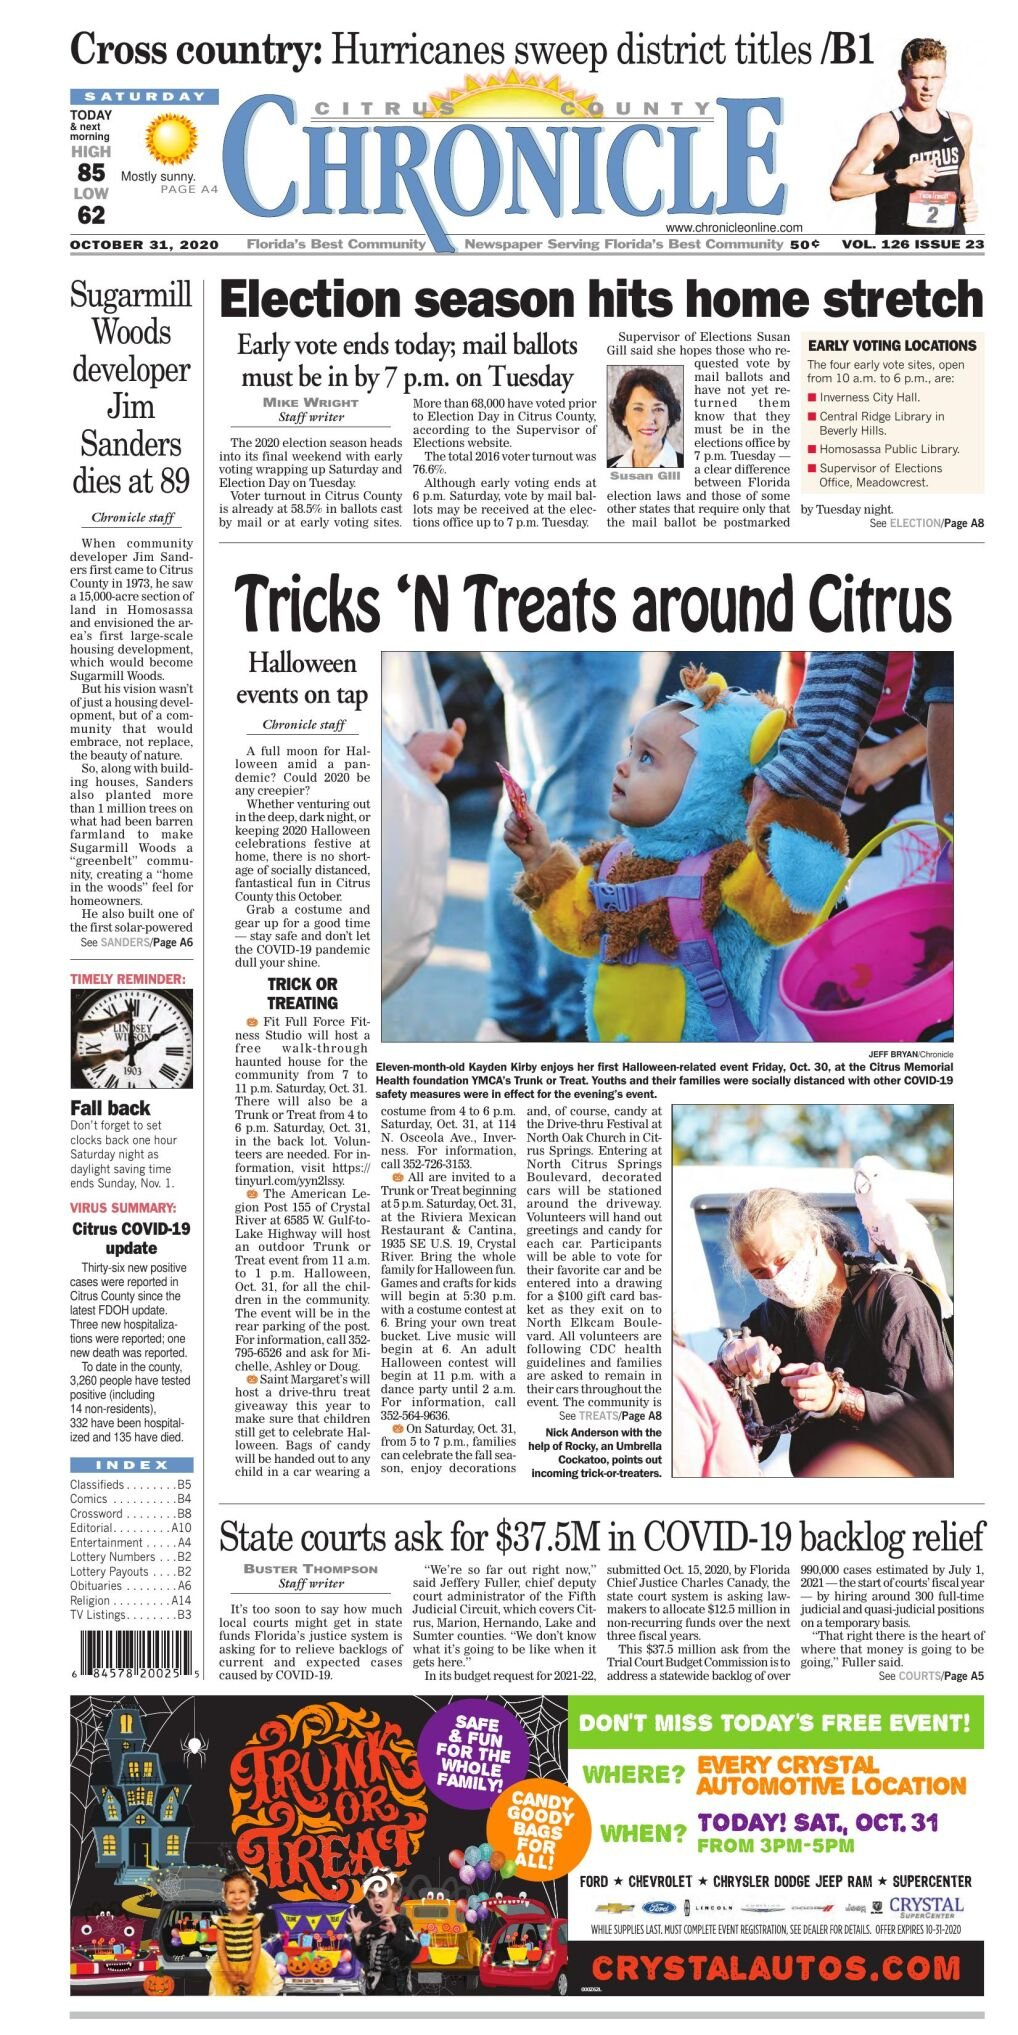 Citrus County Chronicle e-edition Oct 31, 2020